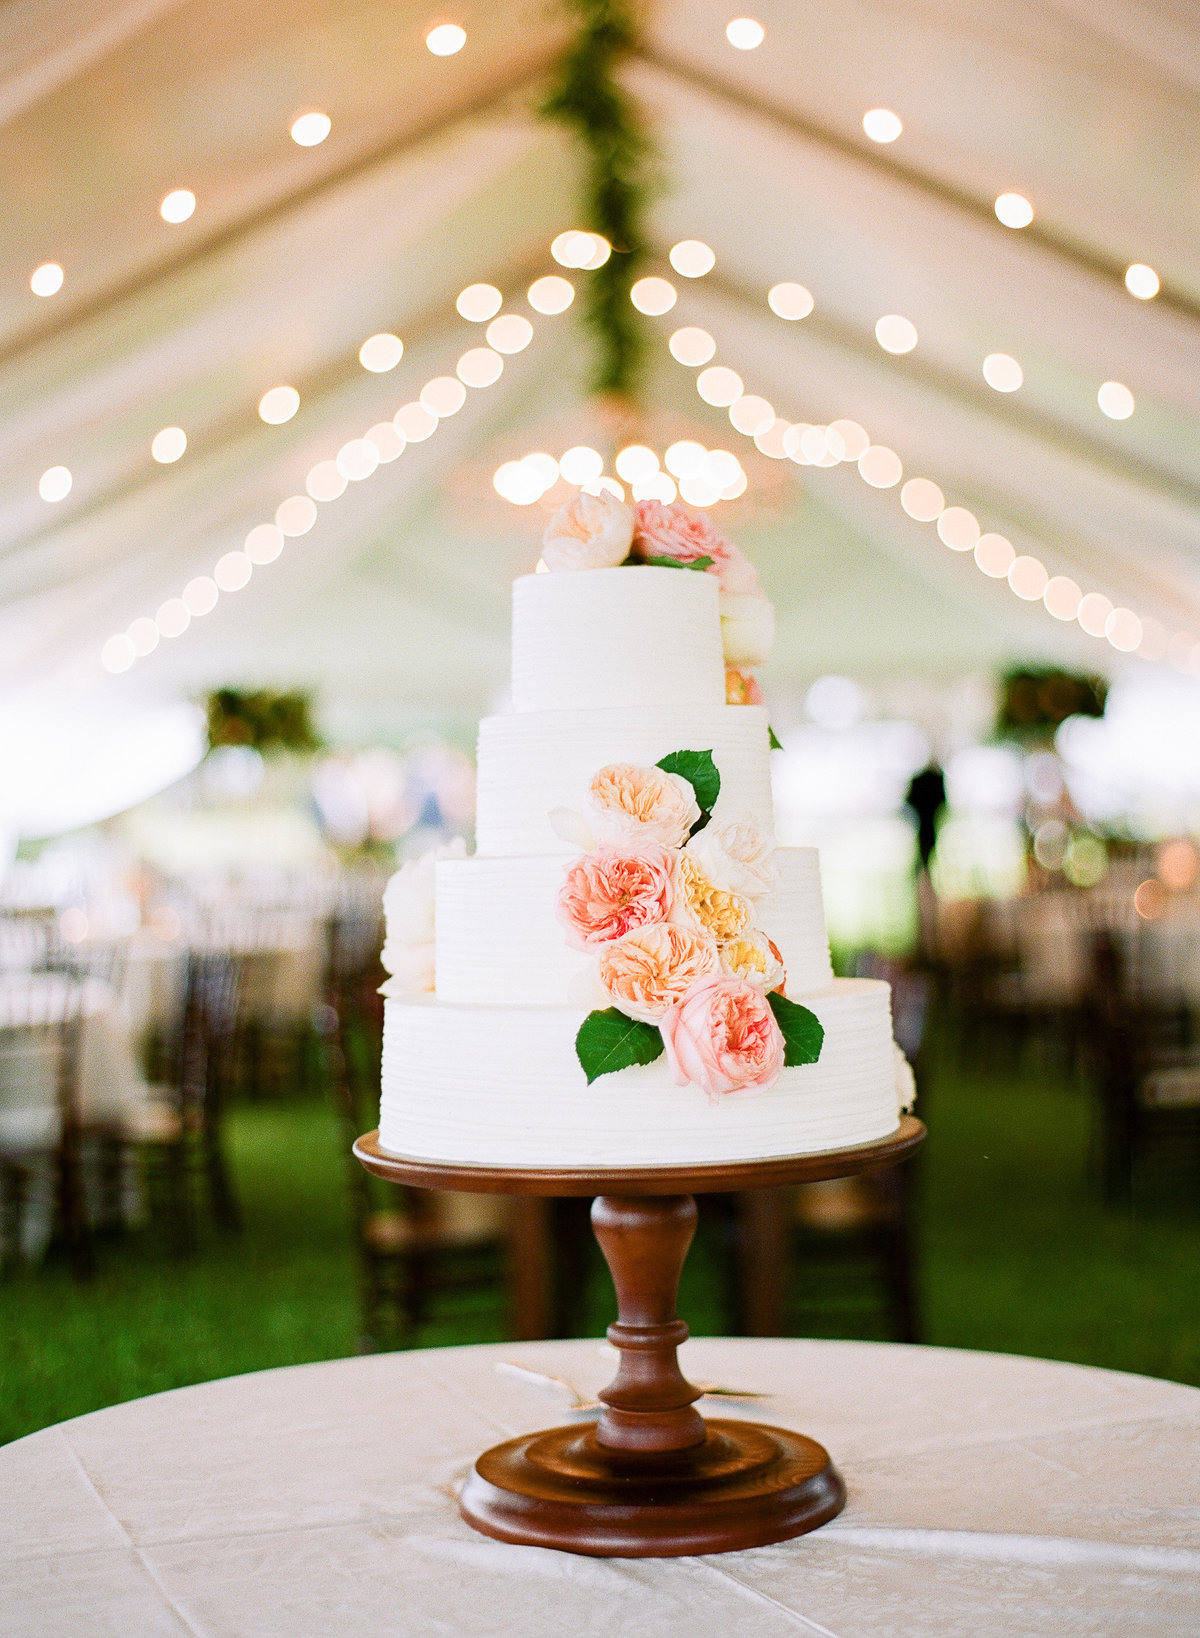 Classic Ashley Bakery Wedding Cake with White Buttercream and Fresh Blush and Peach Flowers on Wooden Mahogany  Pedestal Stand